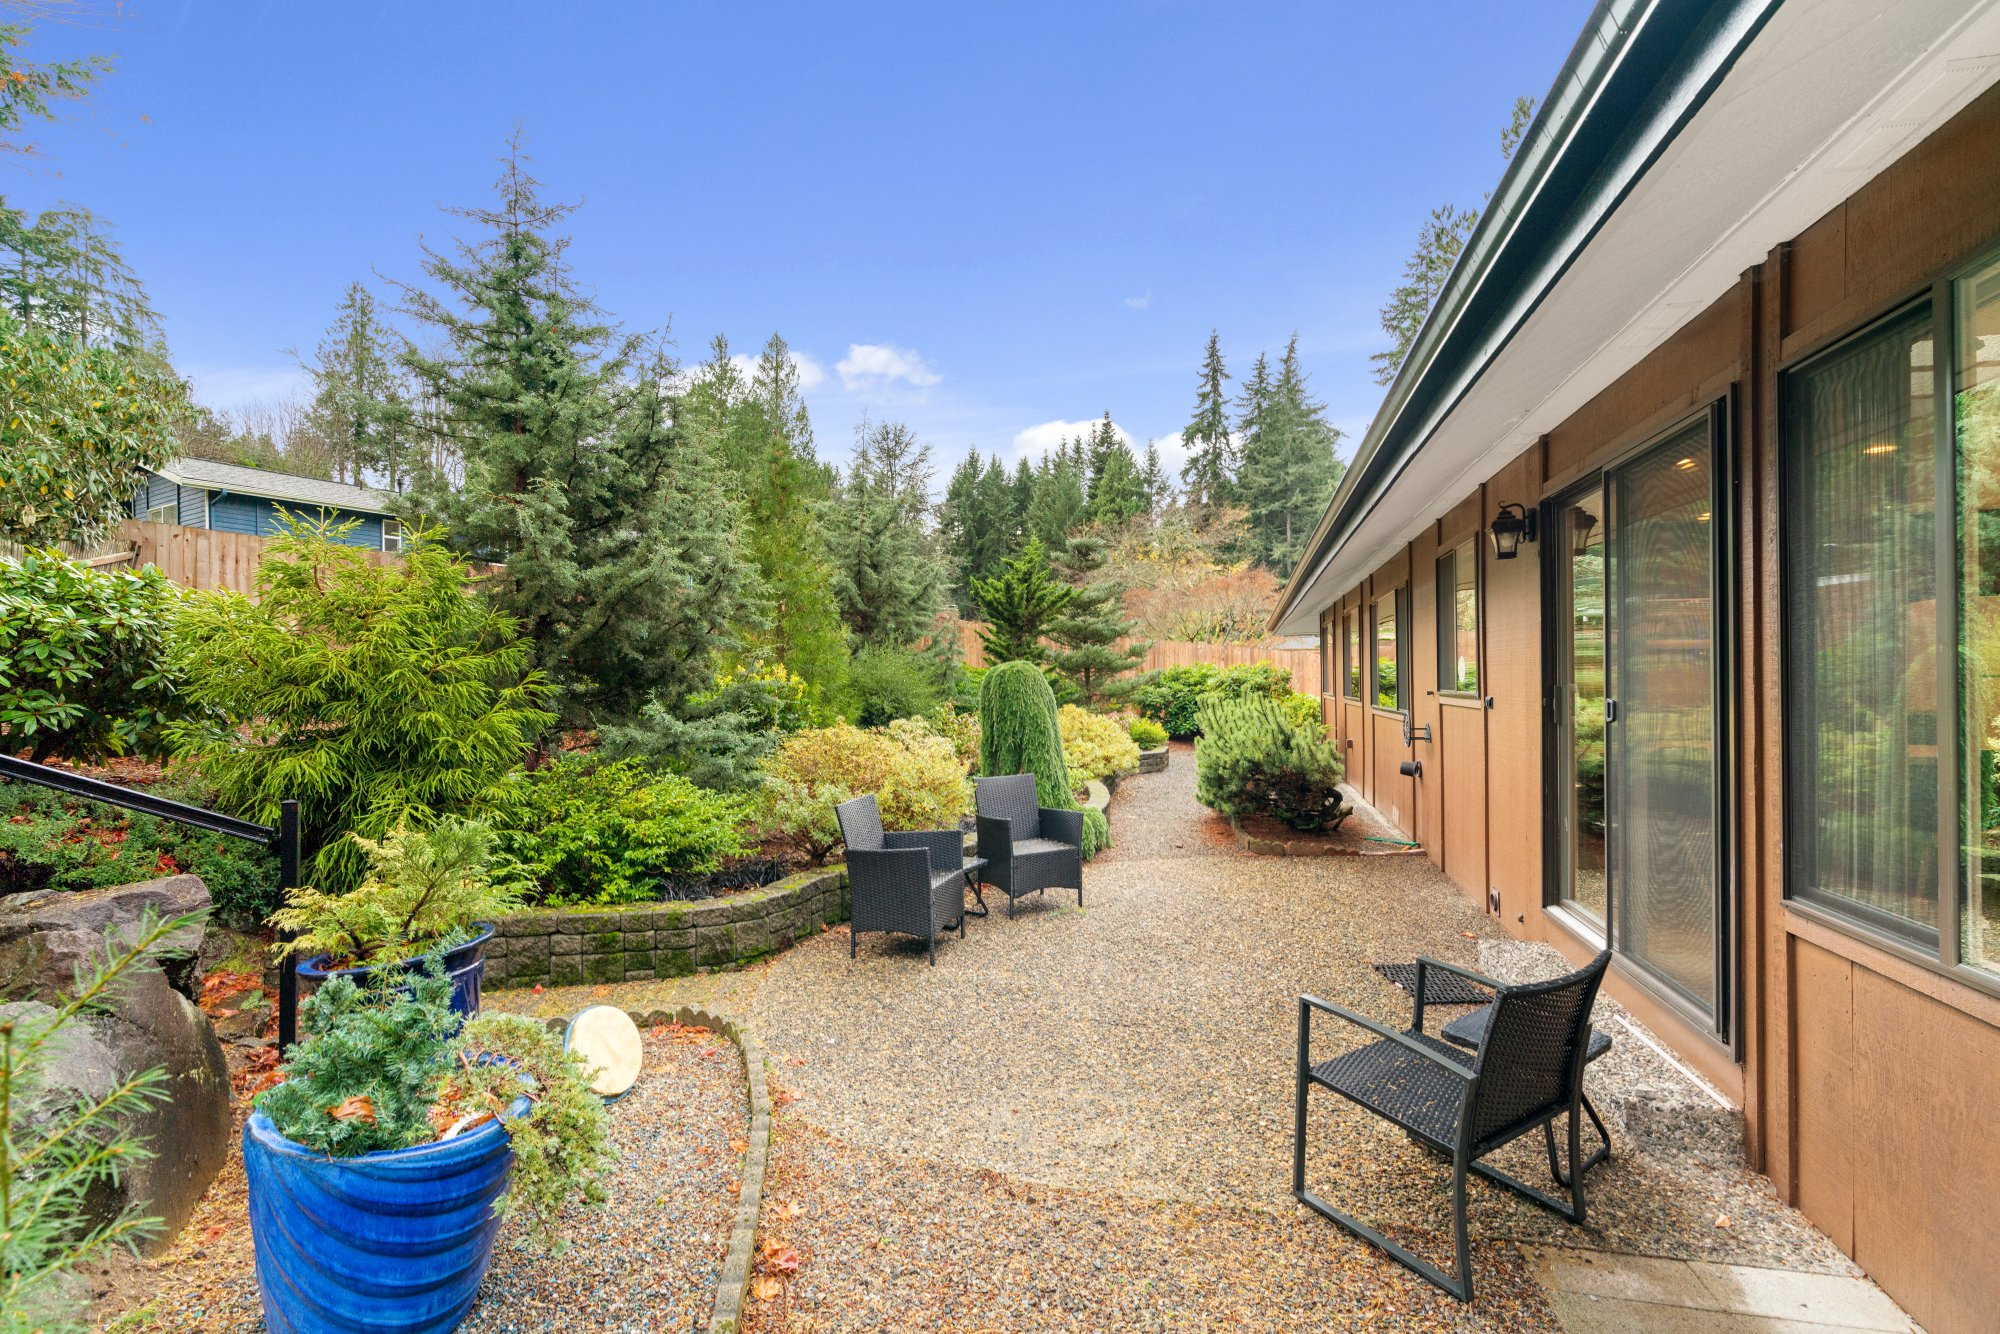 Terry Vehrs_032-22829108thAvenueWest-Edmonds-WA-98020-SMALL